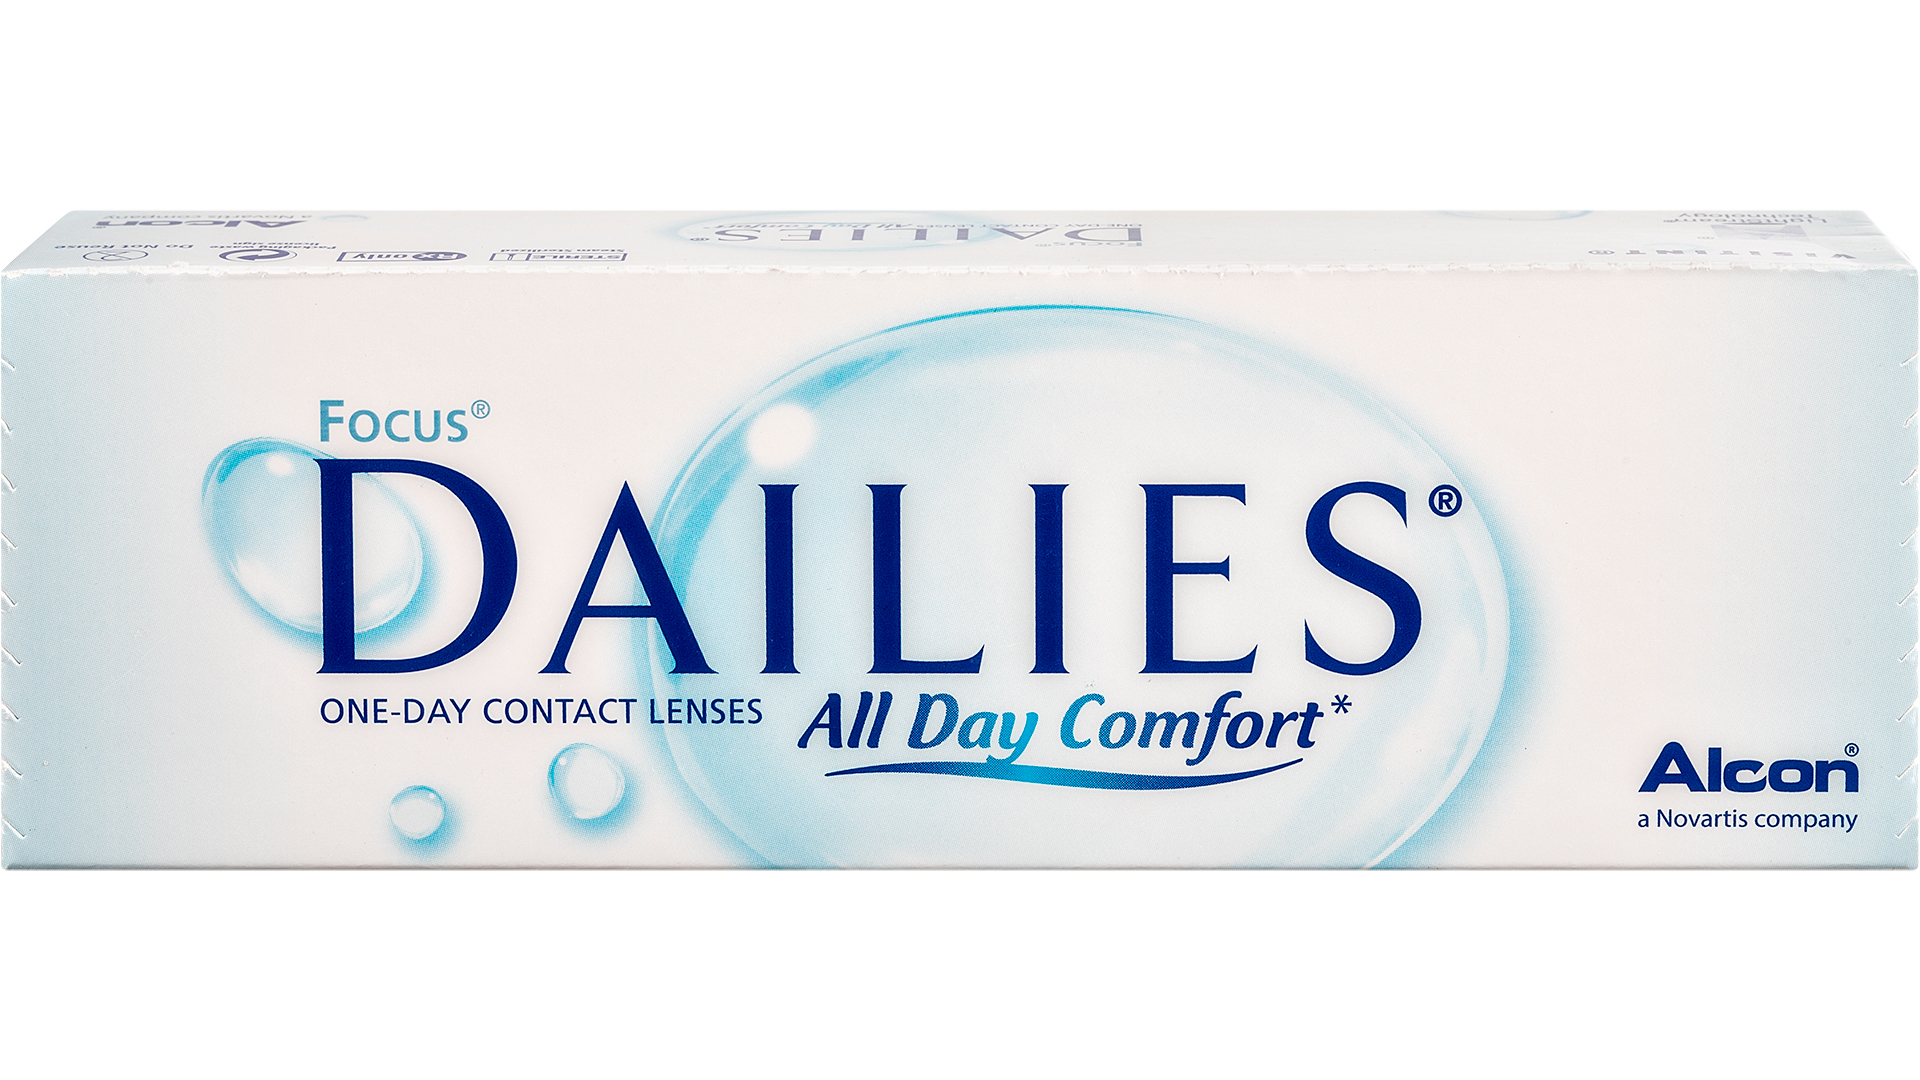 Front Focus Dailies All Day Comfort